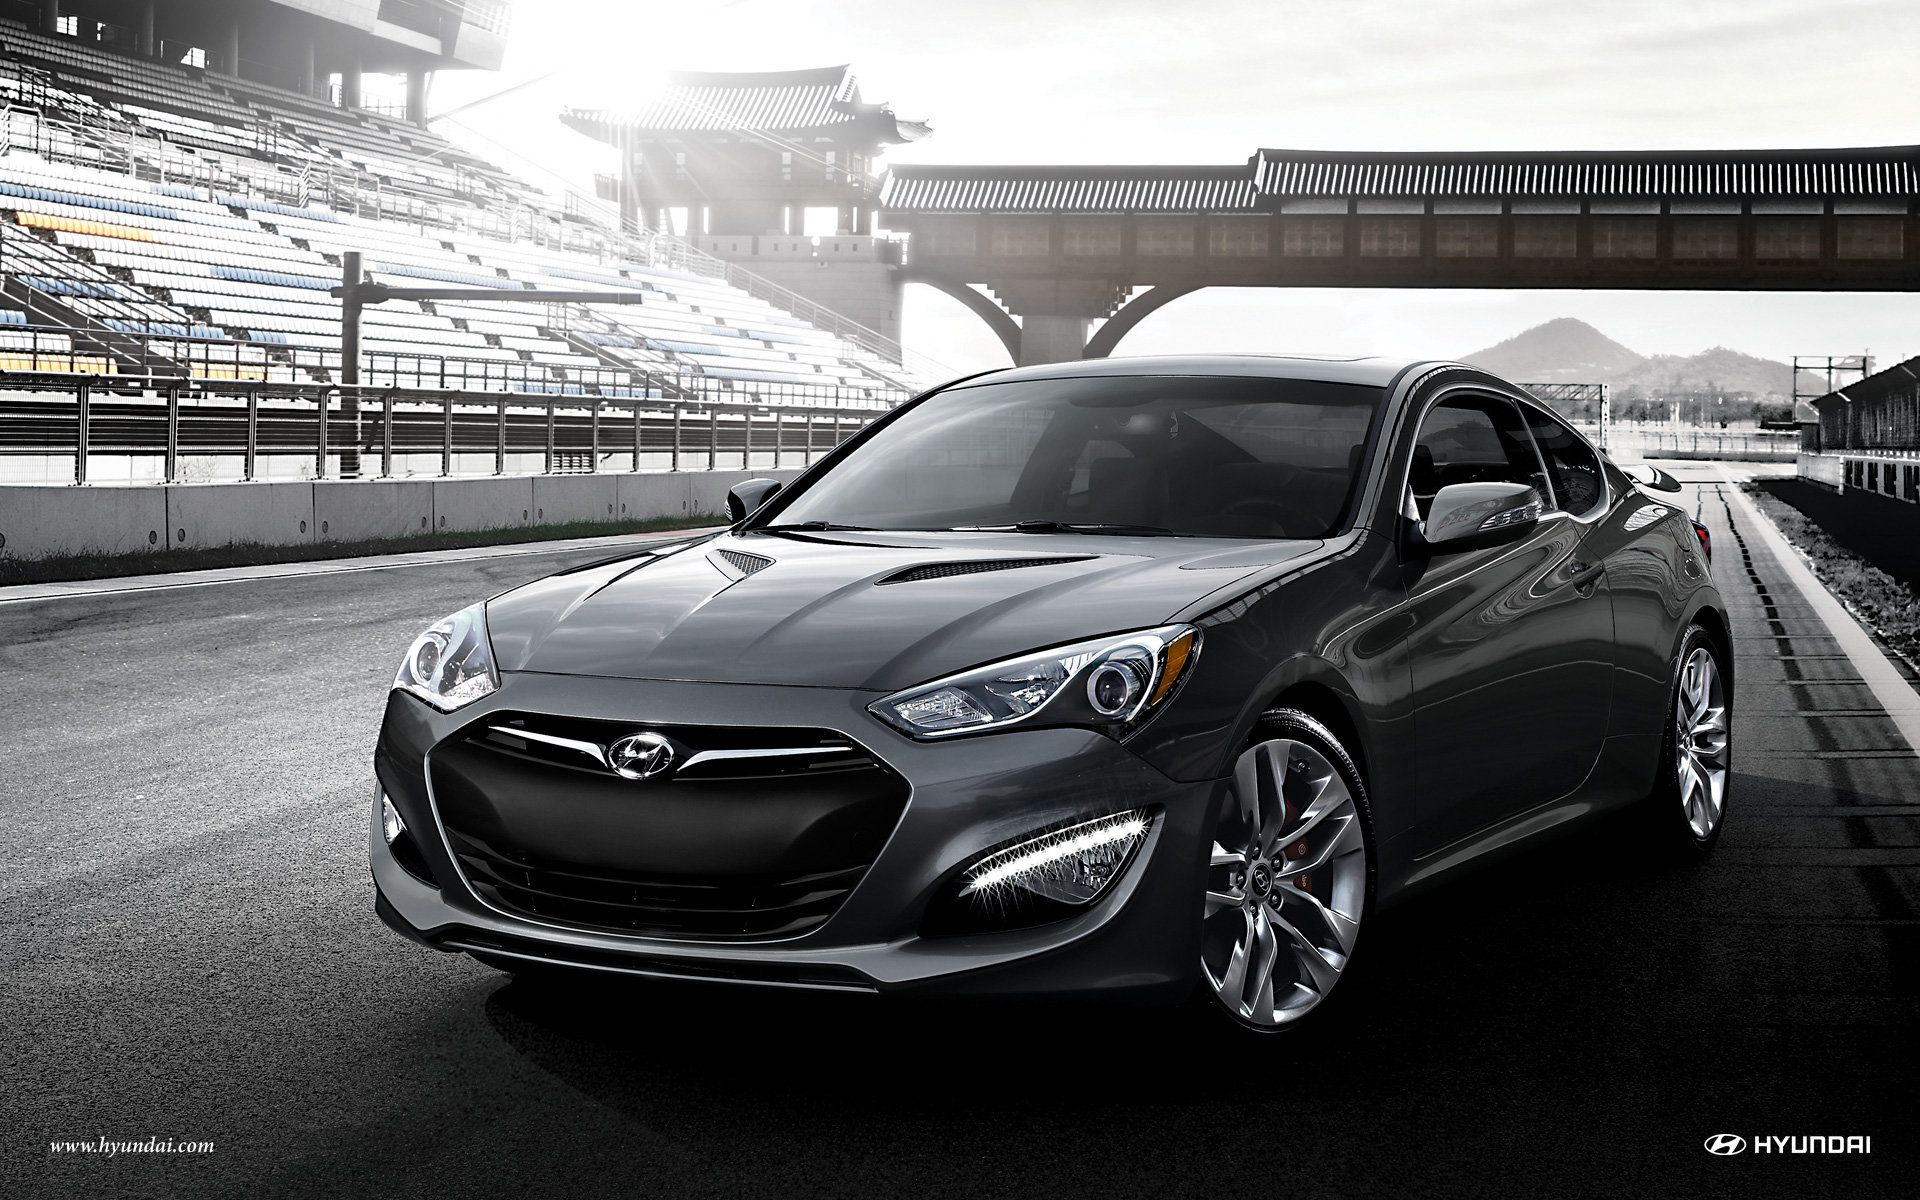 2015 Hyundai Genesis Coupe Wallpaper HD Wallpaper | Hyundai | 2015 hyundai genesis coupe, 2013 ...